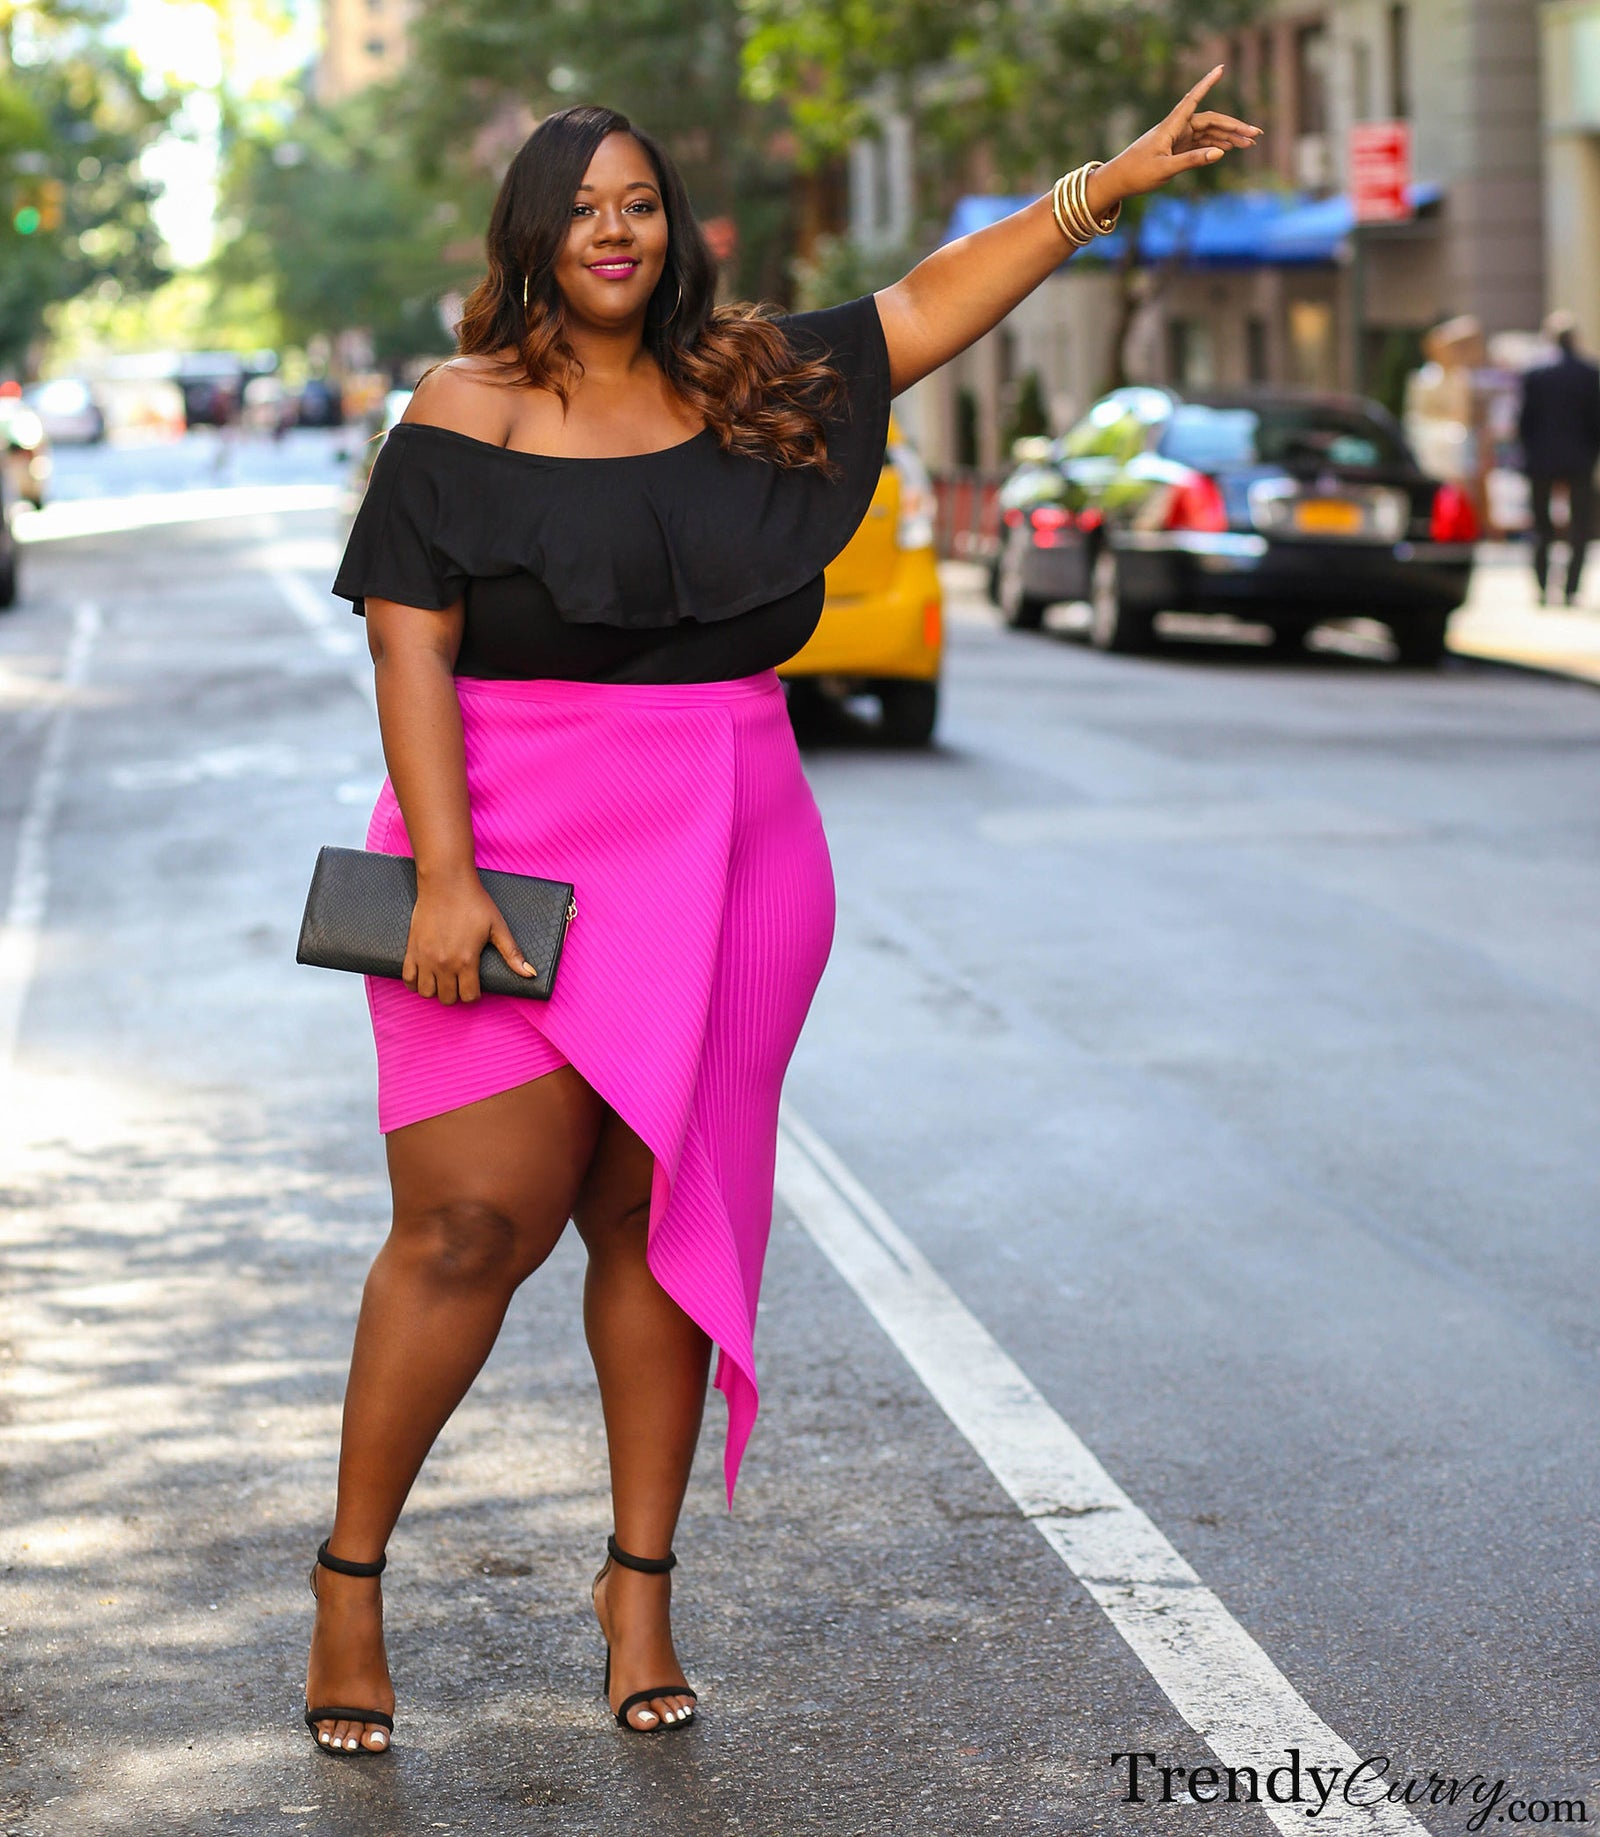 Check out more from Trendy Curvy for how to master angled outfits!Get a similar skirt from Boohoo for $12 (originally $20; available in sizes 14-20 and in three colors).